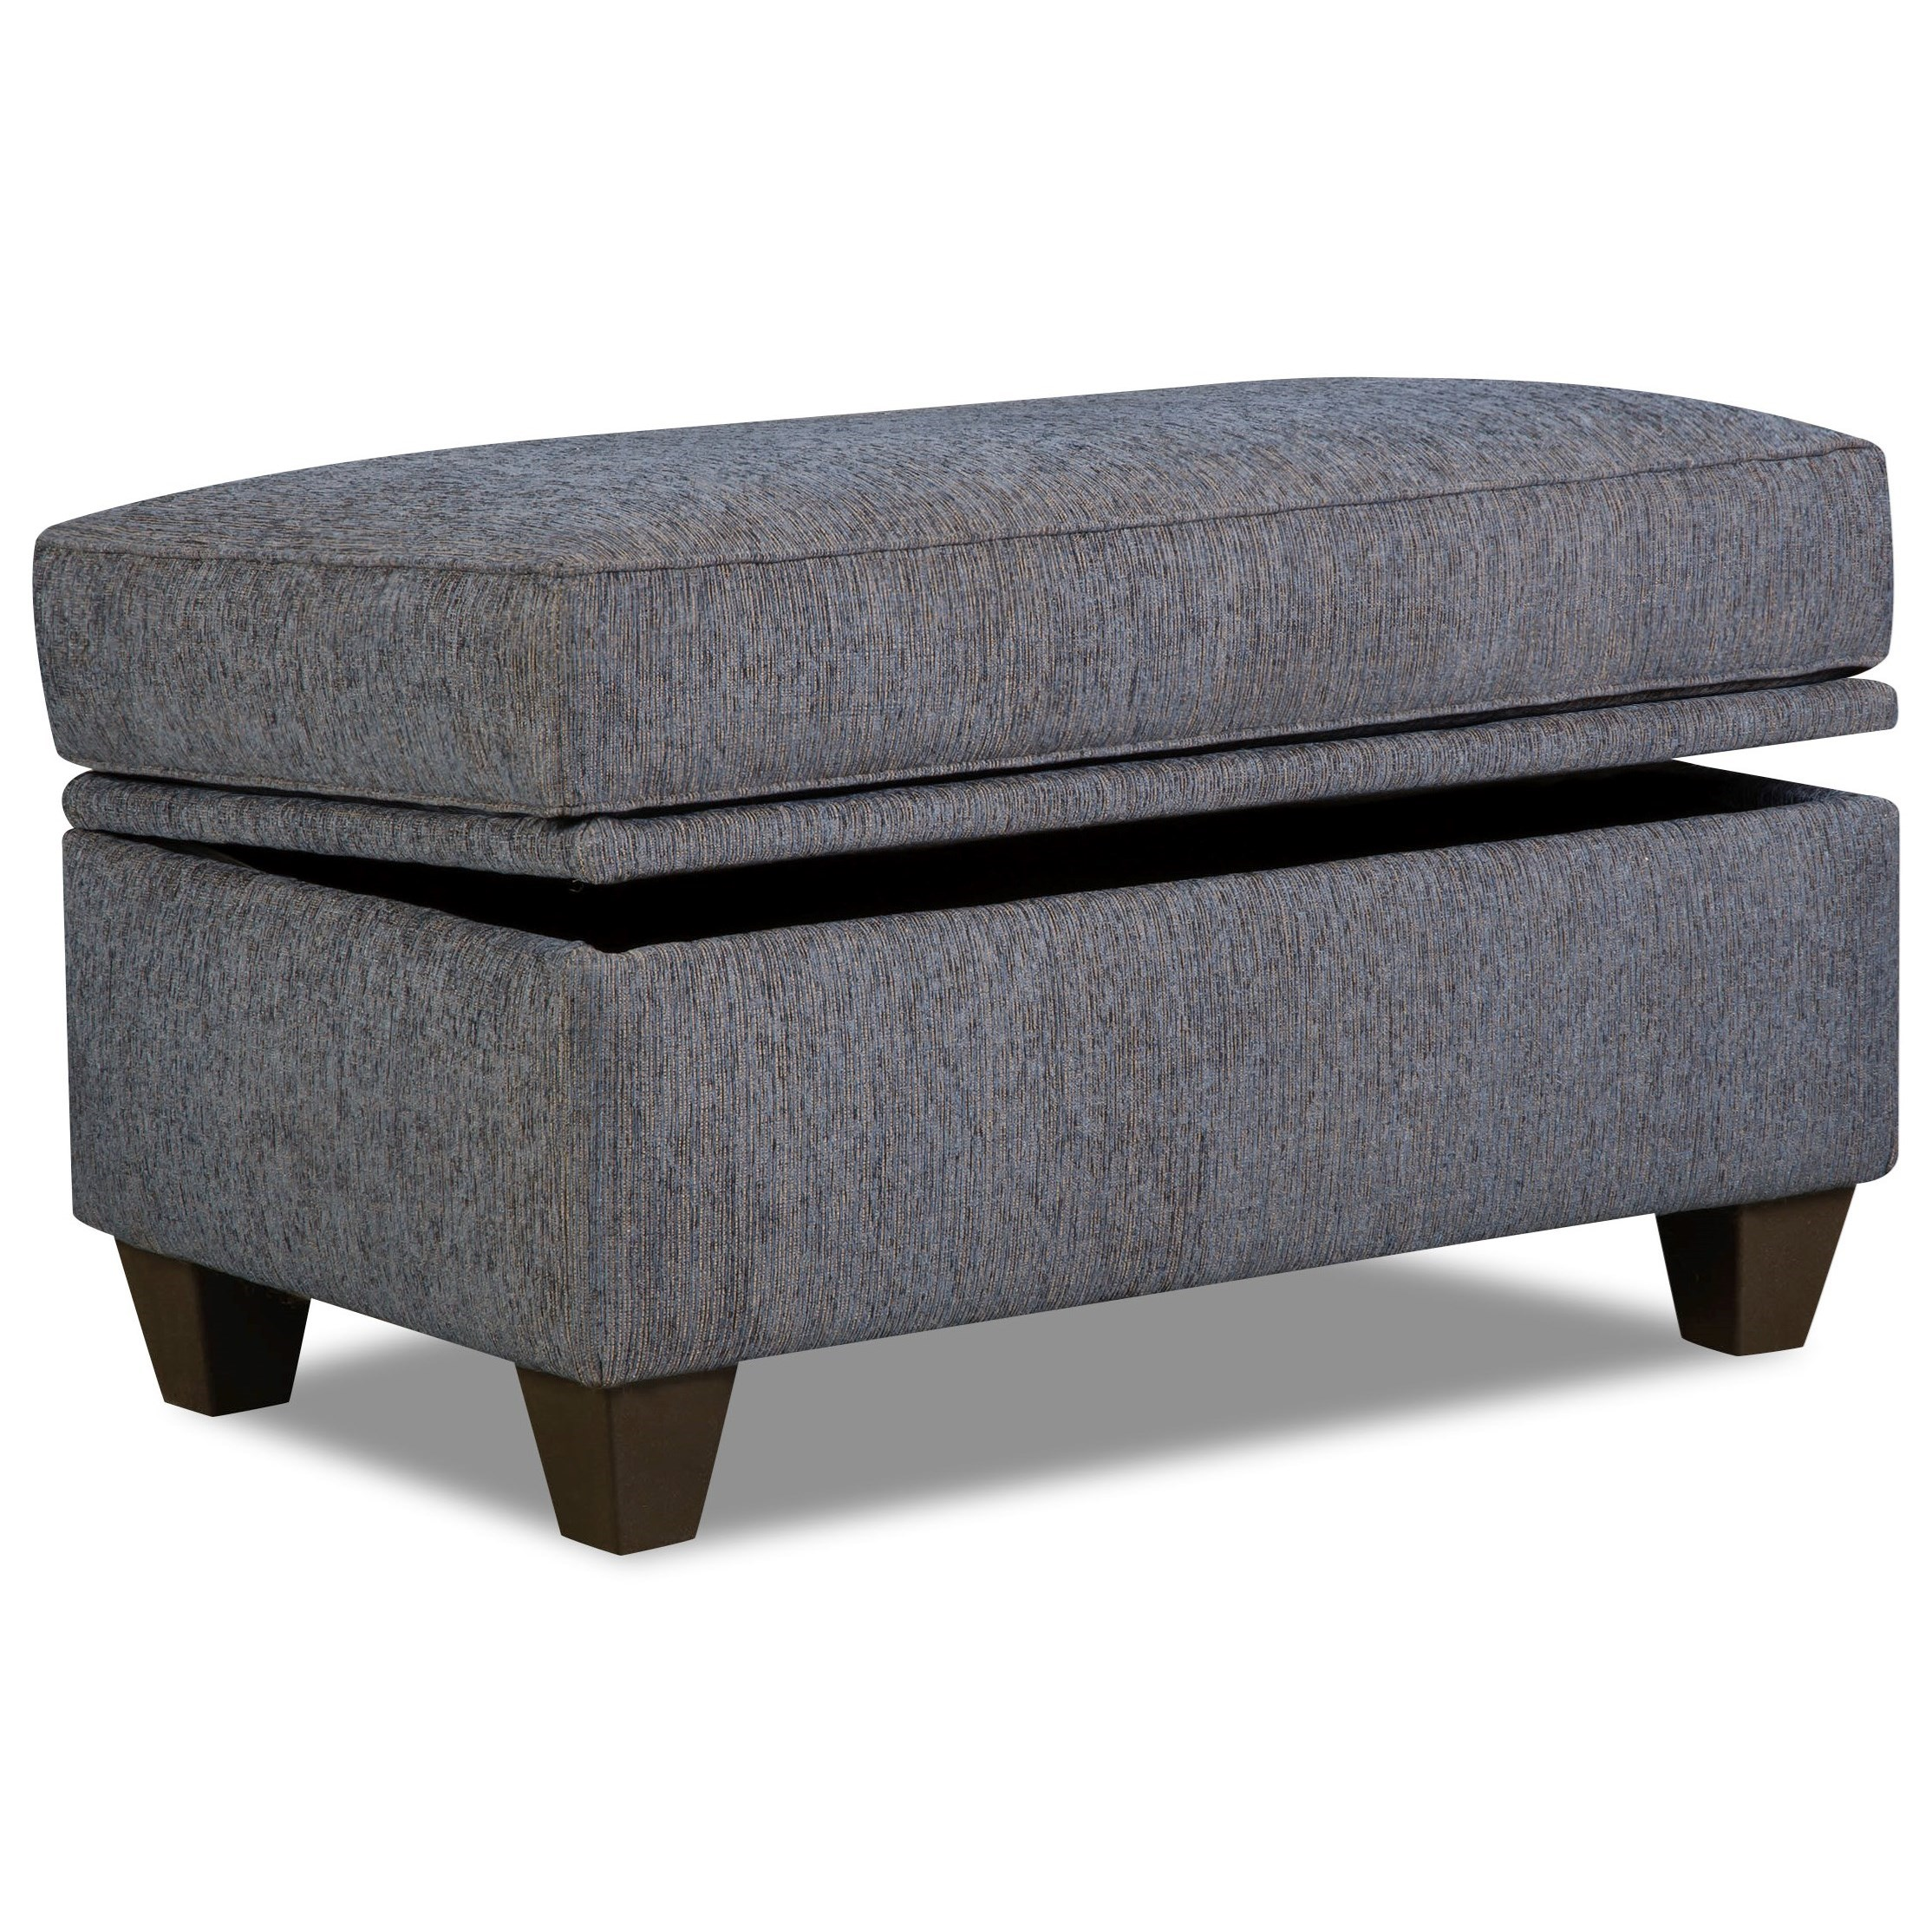 3100 Storage Ottoman by Peak Living at Prime Brothers Furniture